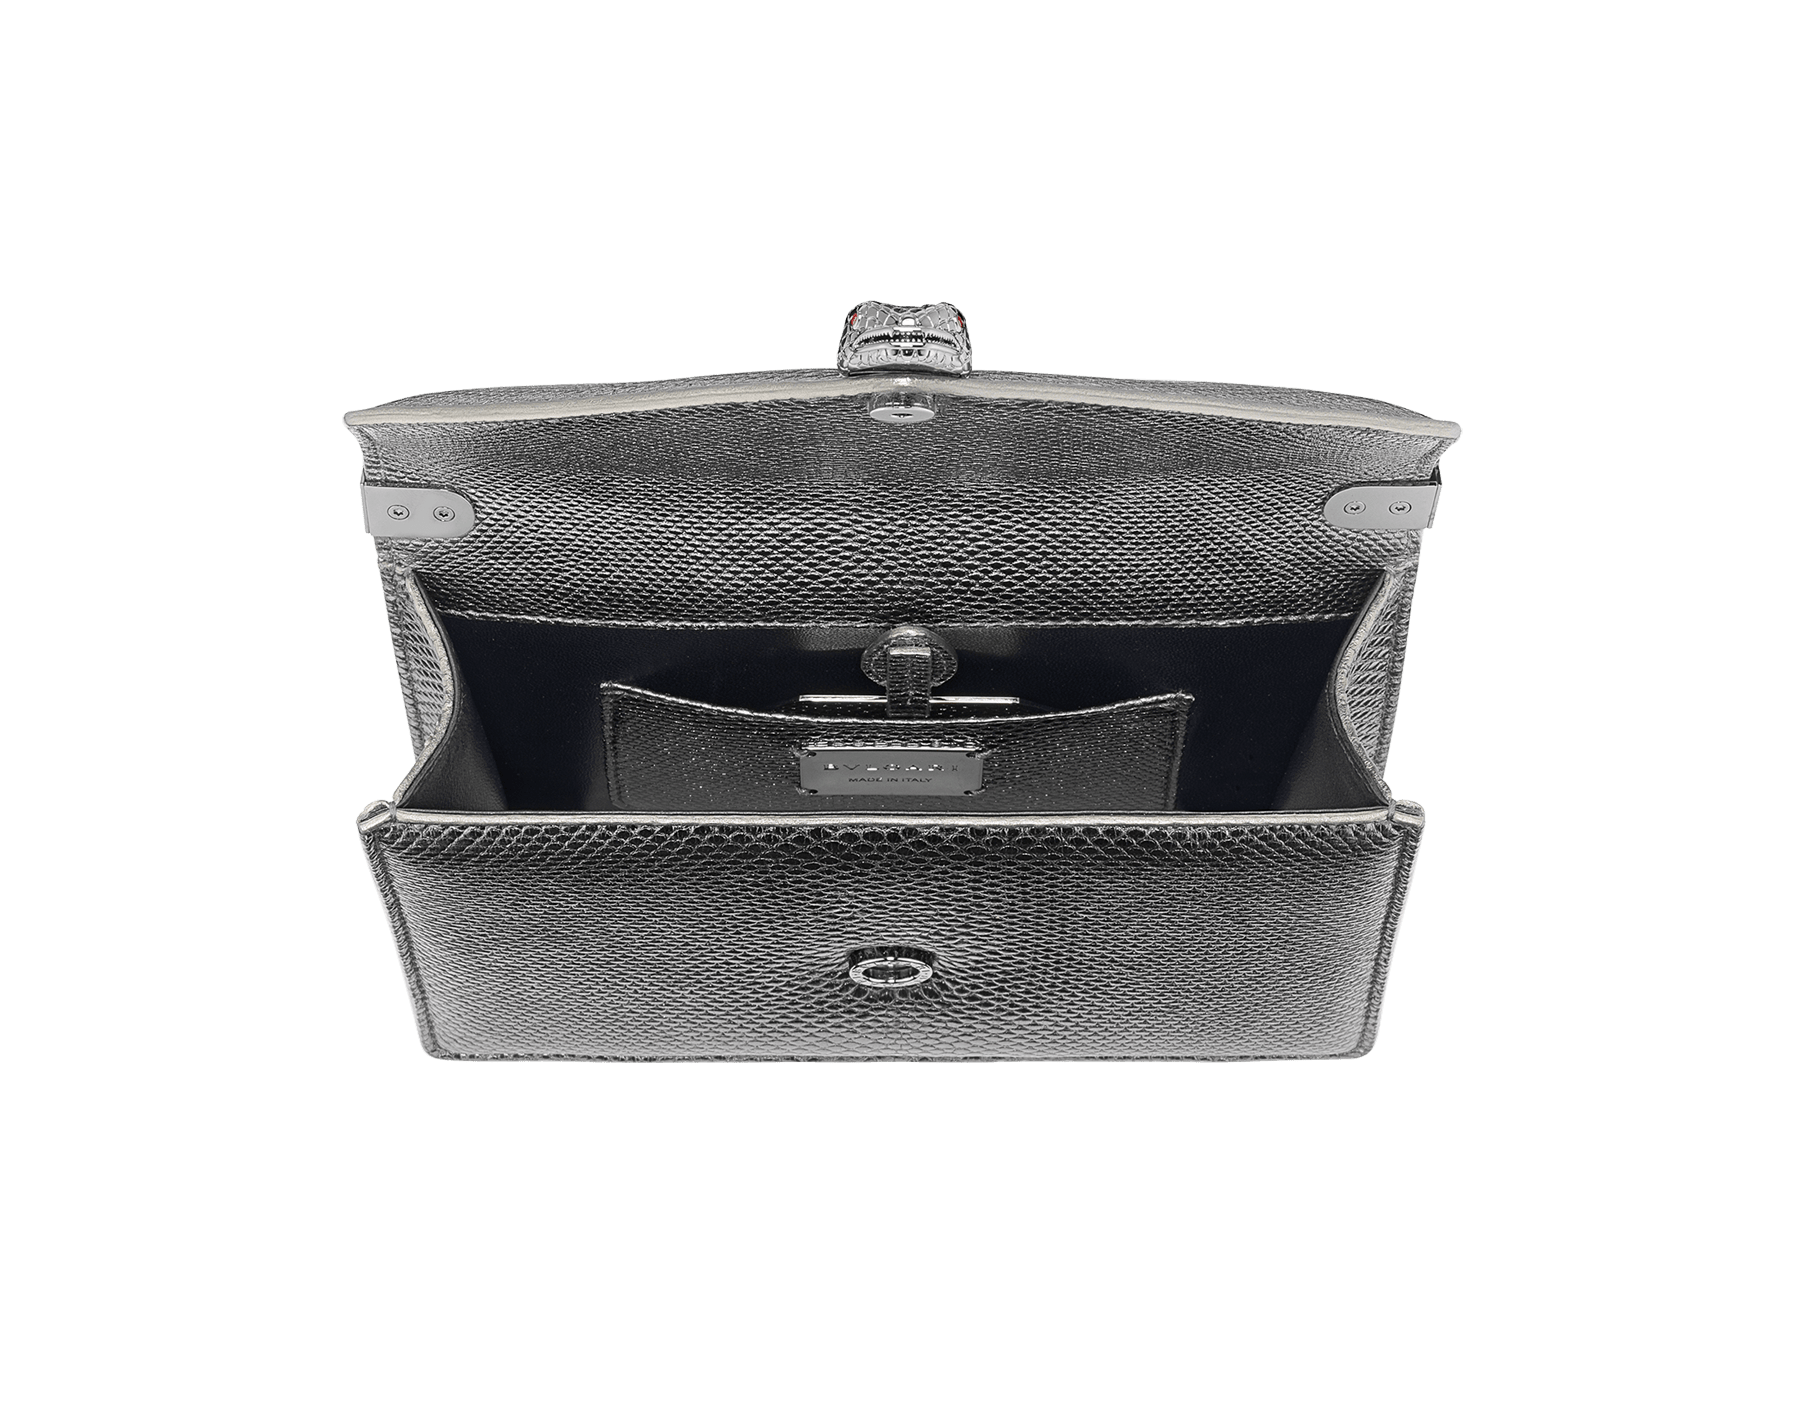 """Serpenti Forever"" multichain shoulder bag in ""Molten"" Charcoal Diamond grey karung skin with black nappa leather inner lining, offering a touch of radiance for the Winter Holidays. New Serpenti head closure in dark ruthenium-plated brass, complete with ruby-red enamel eyes. 290543 image 4"